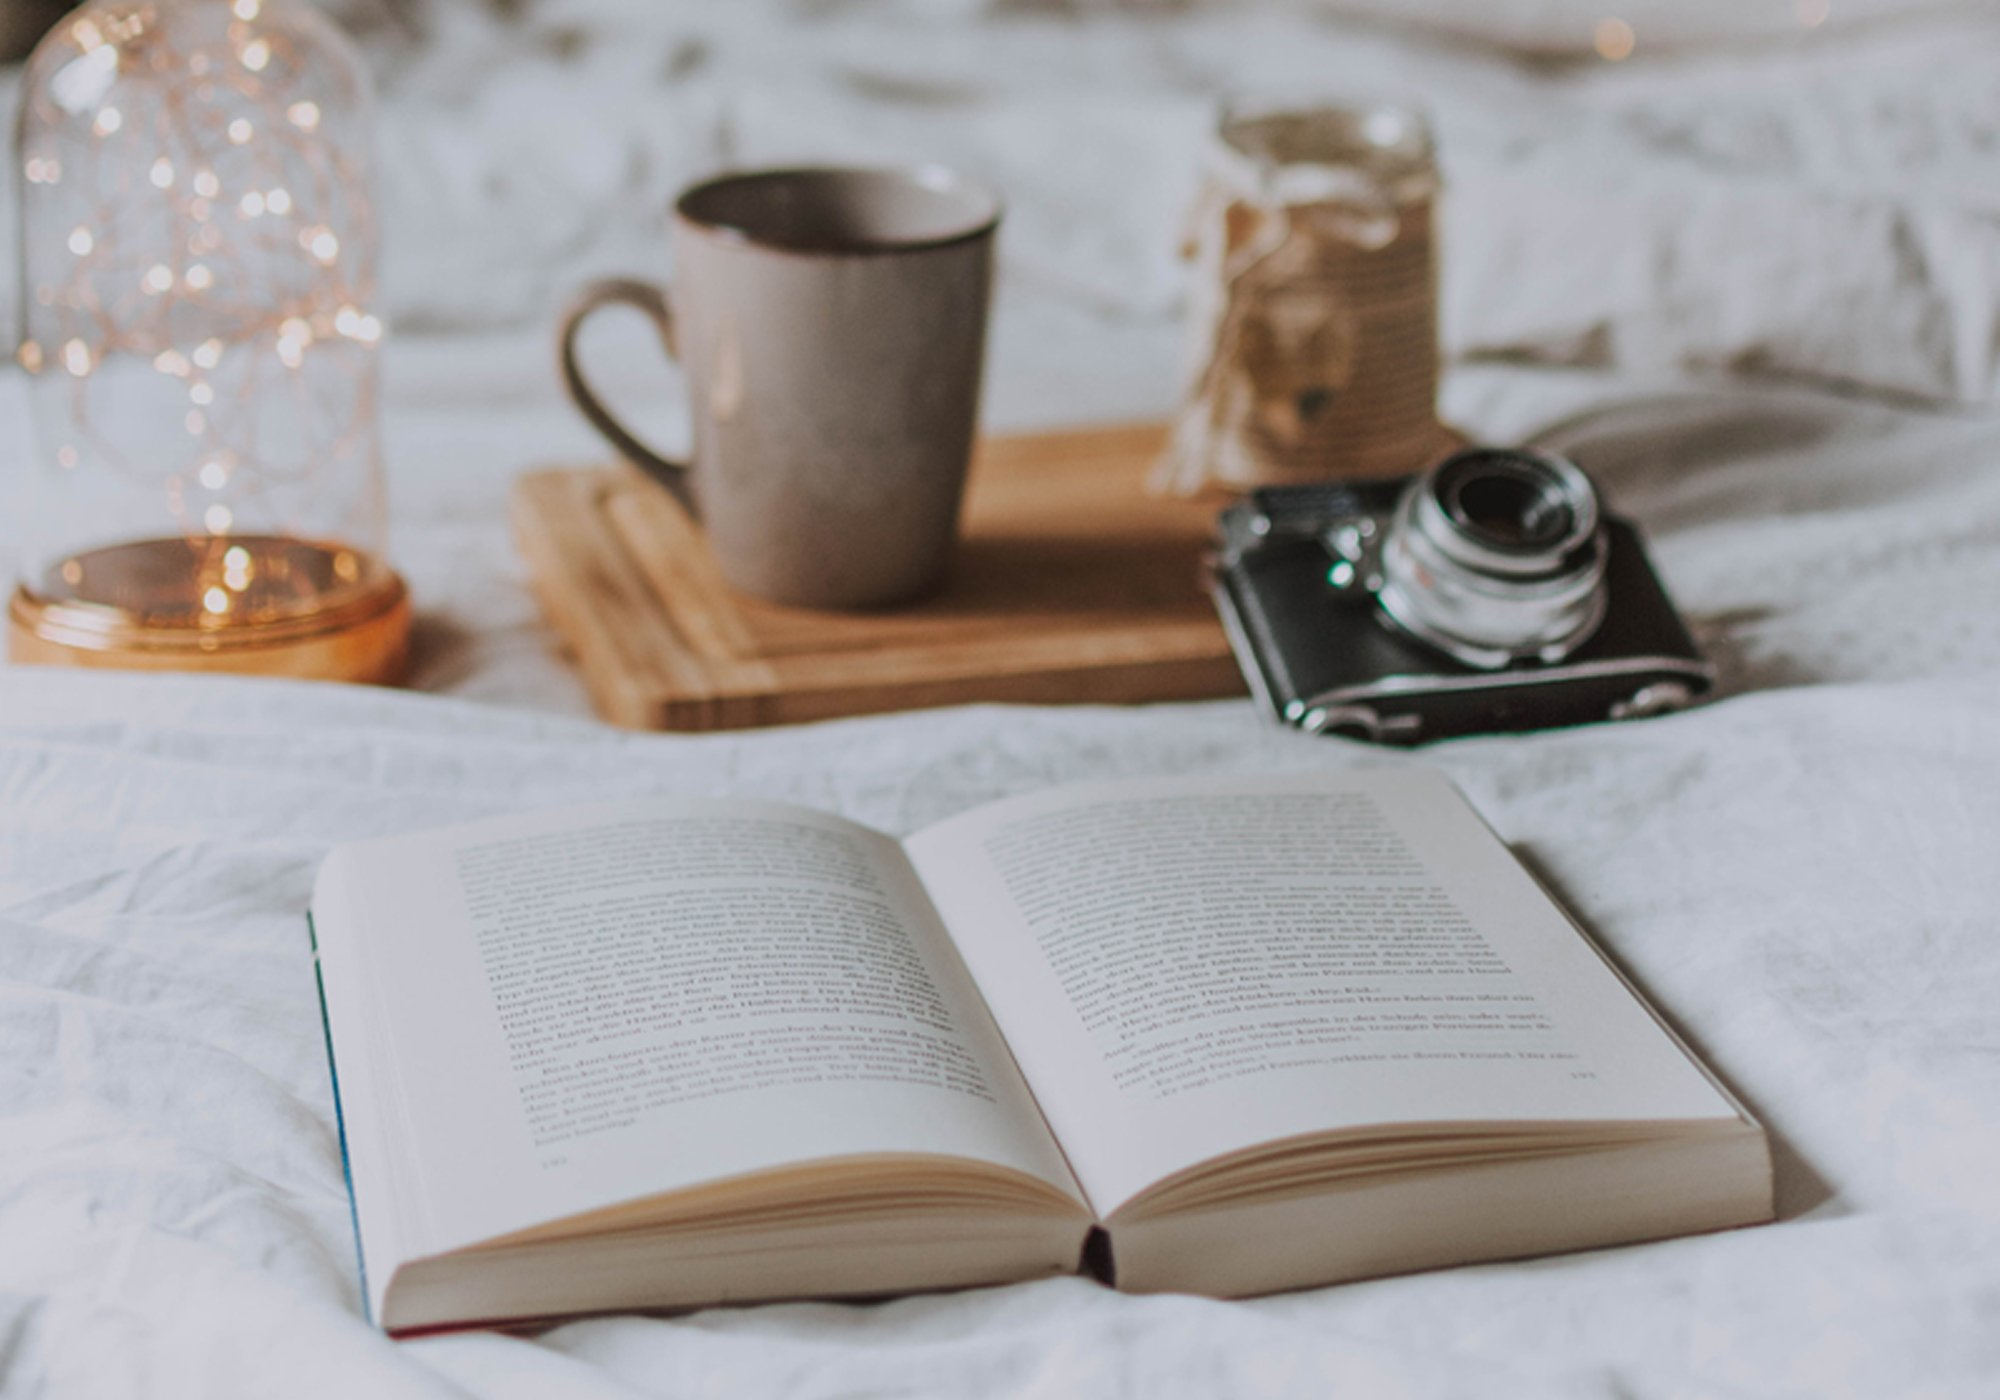 a book, a camera and a cup of coffee on a bed